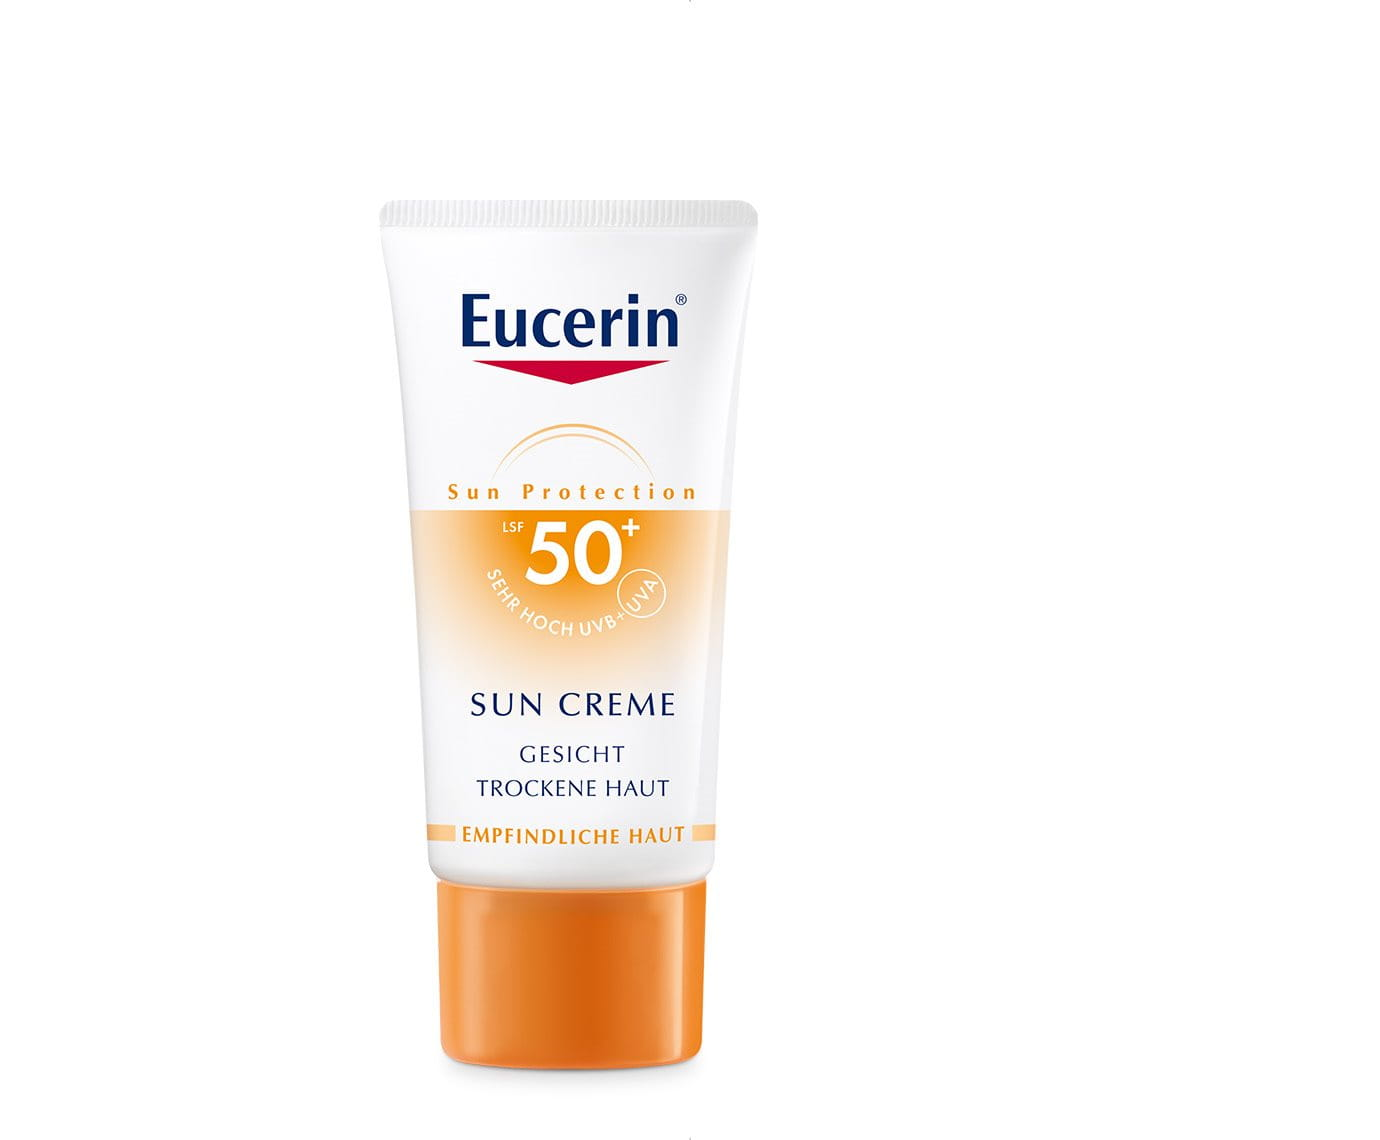 sun creme lsf 50 eucerin. Black Bedroom Furniture Sets. Home Design Ideas